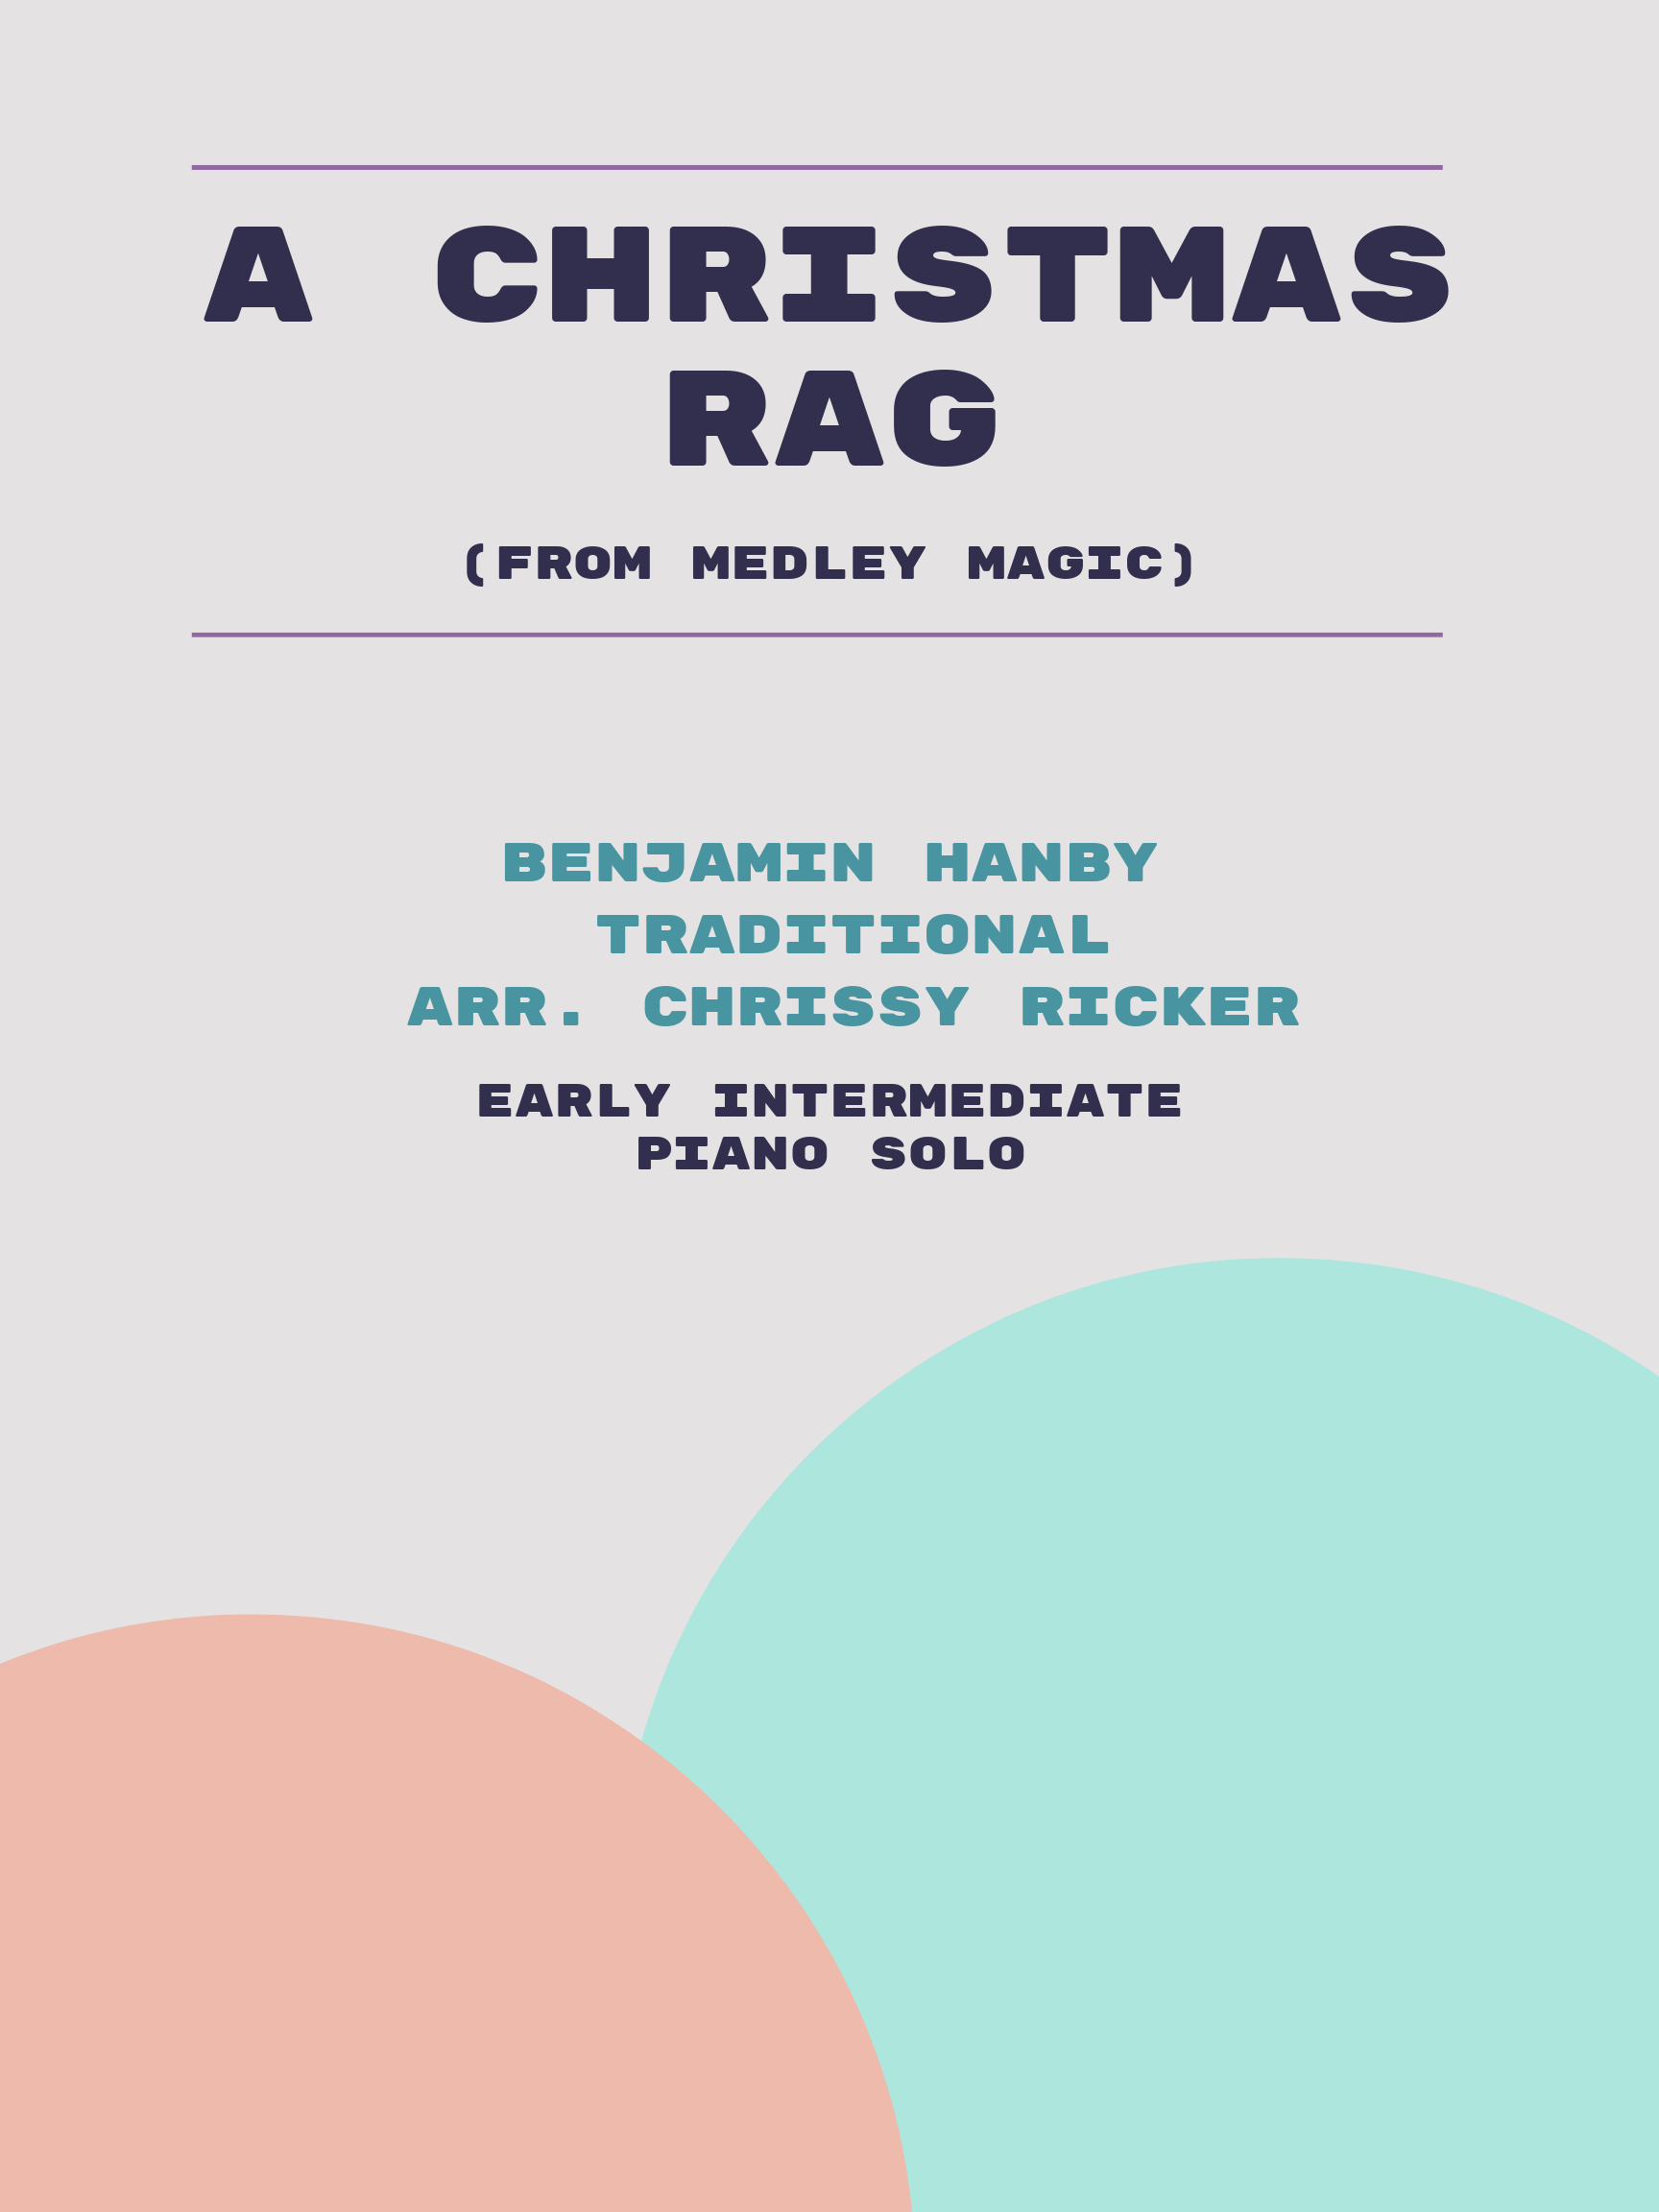 A Christmas Rag by Benjamin Hanby, Traditional